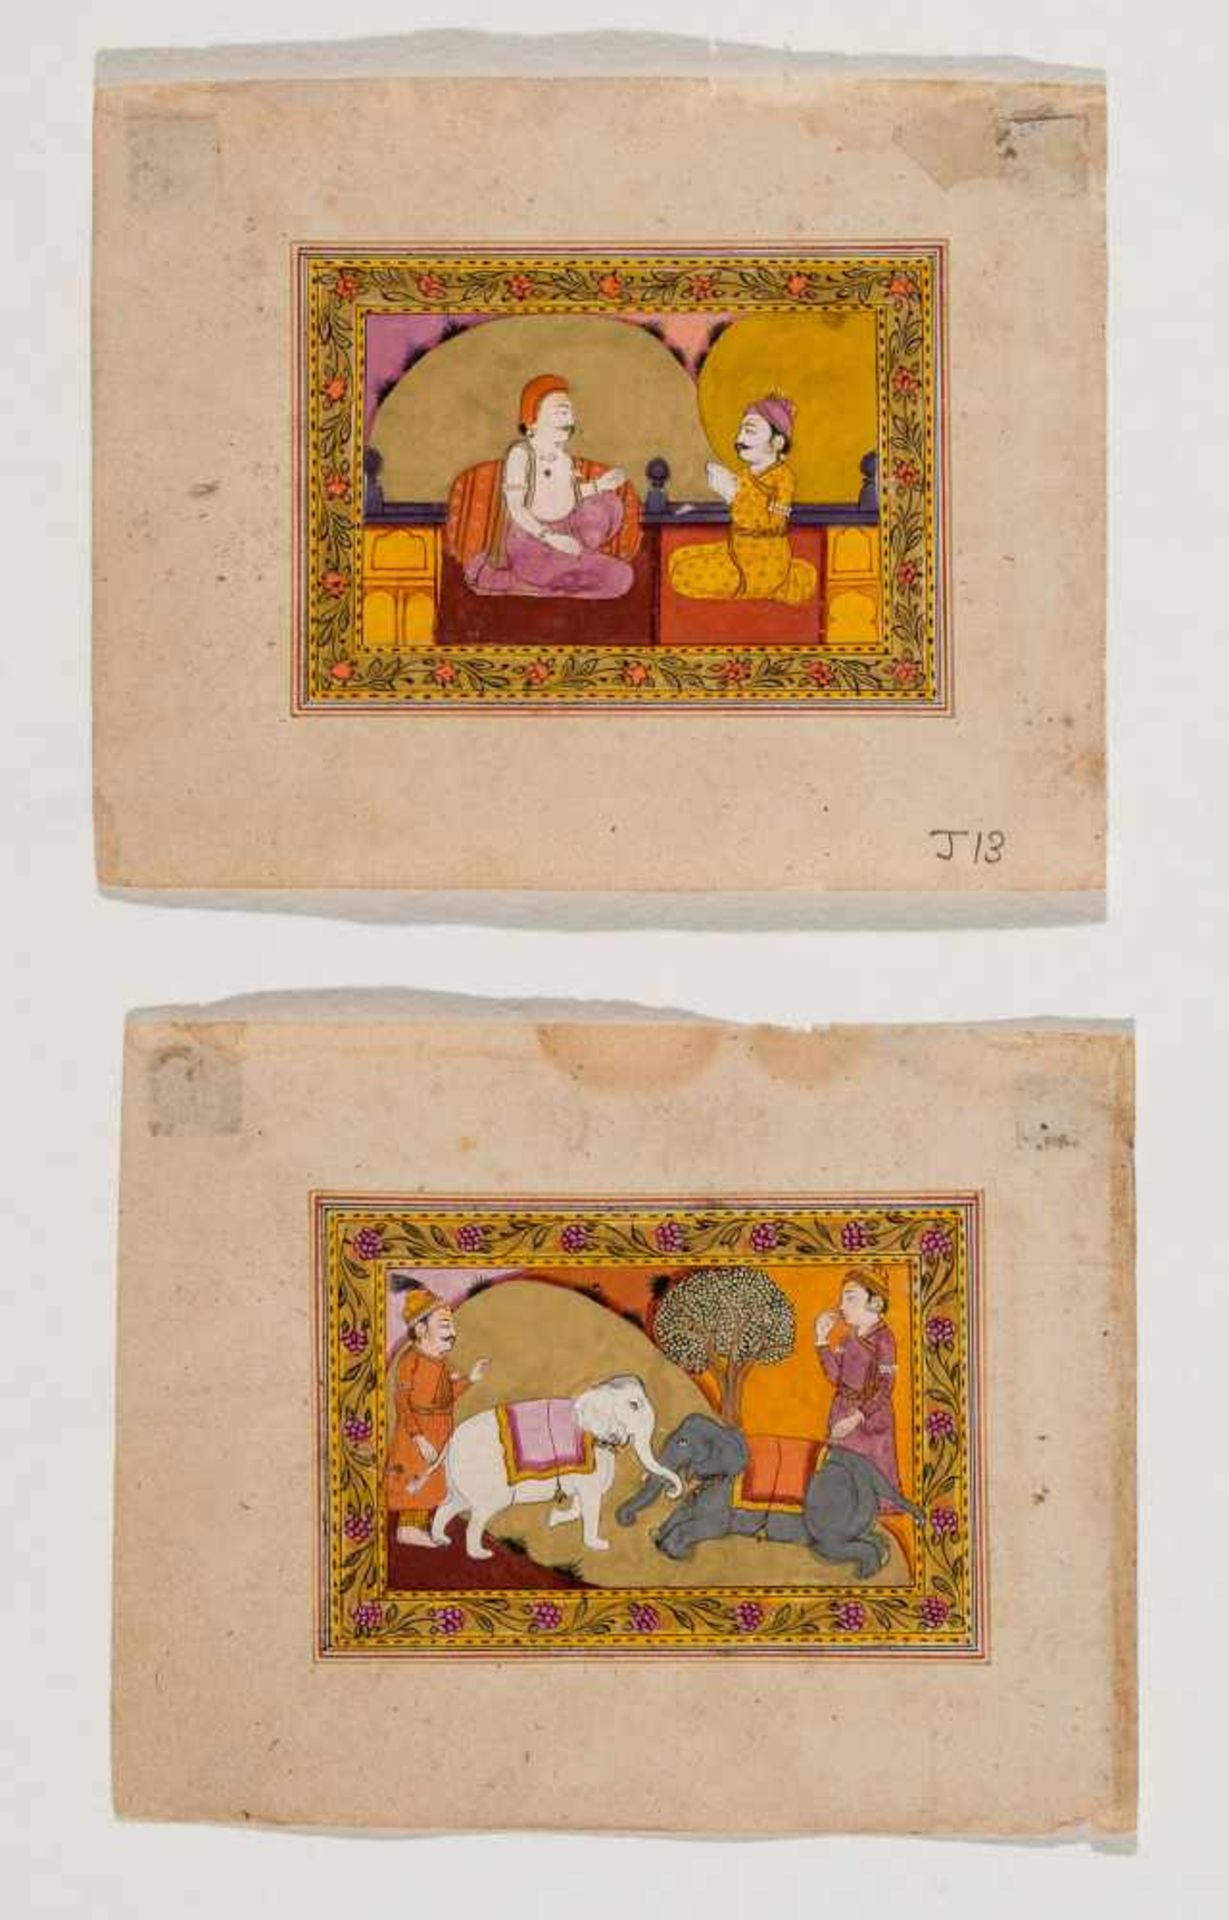 A PAIR OF INDIAN MINIATURE PAINTINGS - 19TH CENTURYMiniature painting with colors and gold on